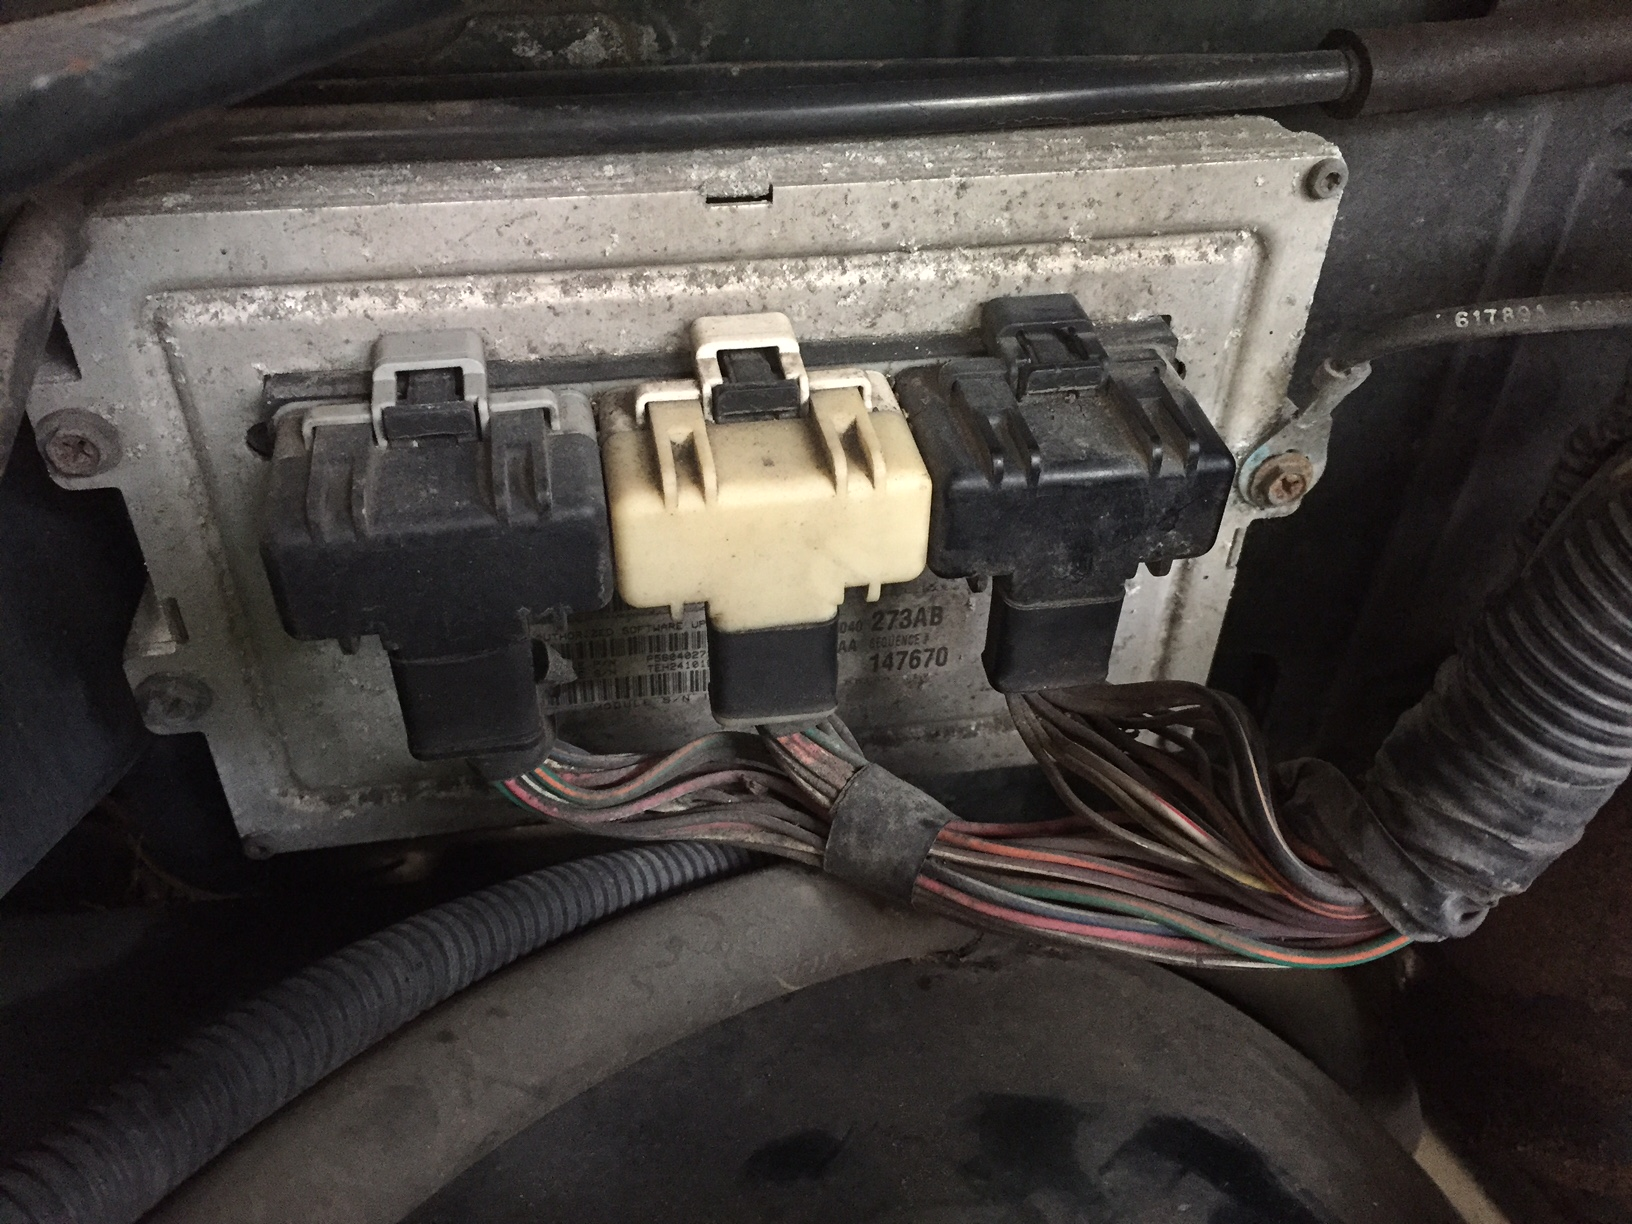 1999 dodge caravan wiring diagram 25 hp johnson outboard parts 2001 ram 2500 5.9l - battery voltage drop...bad pcm volt regulator dodgeforum.com